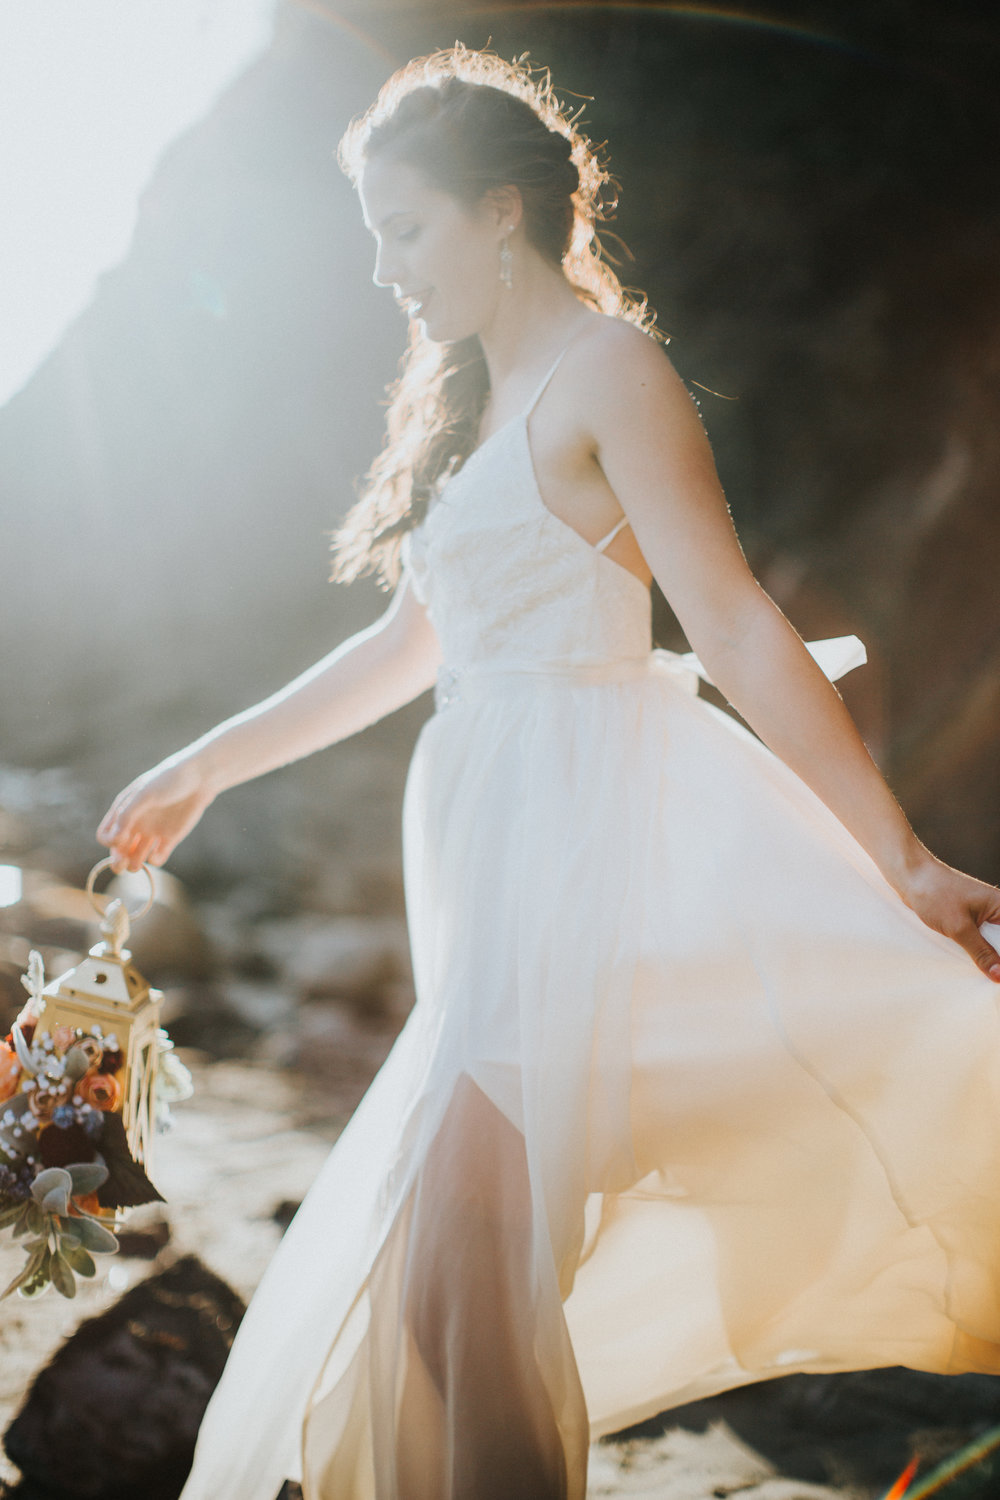 Port-Angeles-Salt-Creek-beach-wedding-bride-PNW-olympic-peninsula-photographer-Kayla-Dawn-Photography-outdoors-golden-hour-dancer-dress (15).jpg